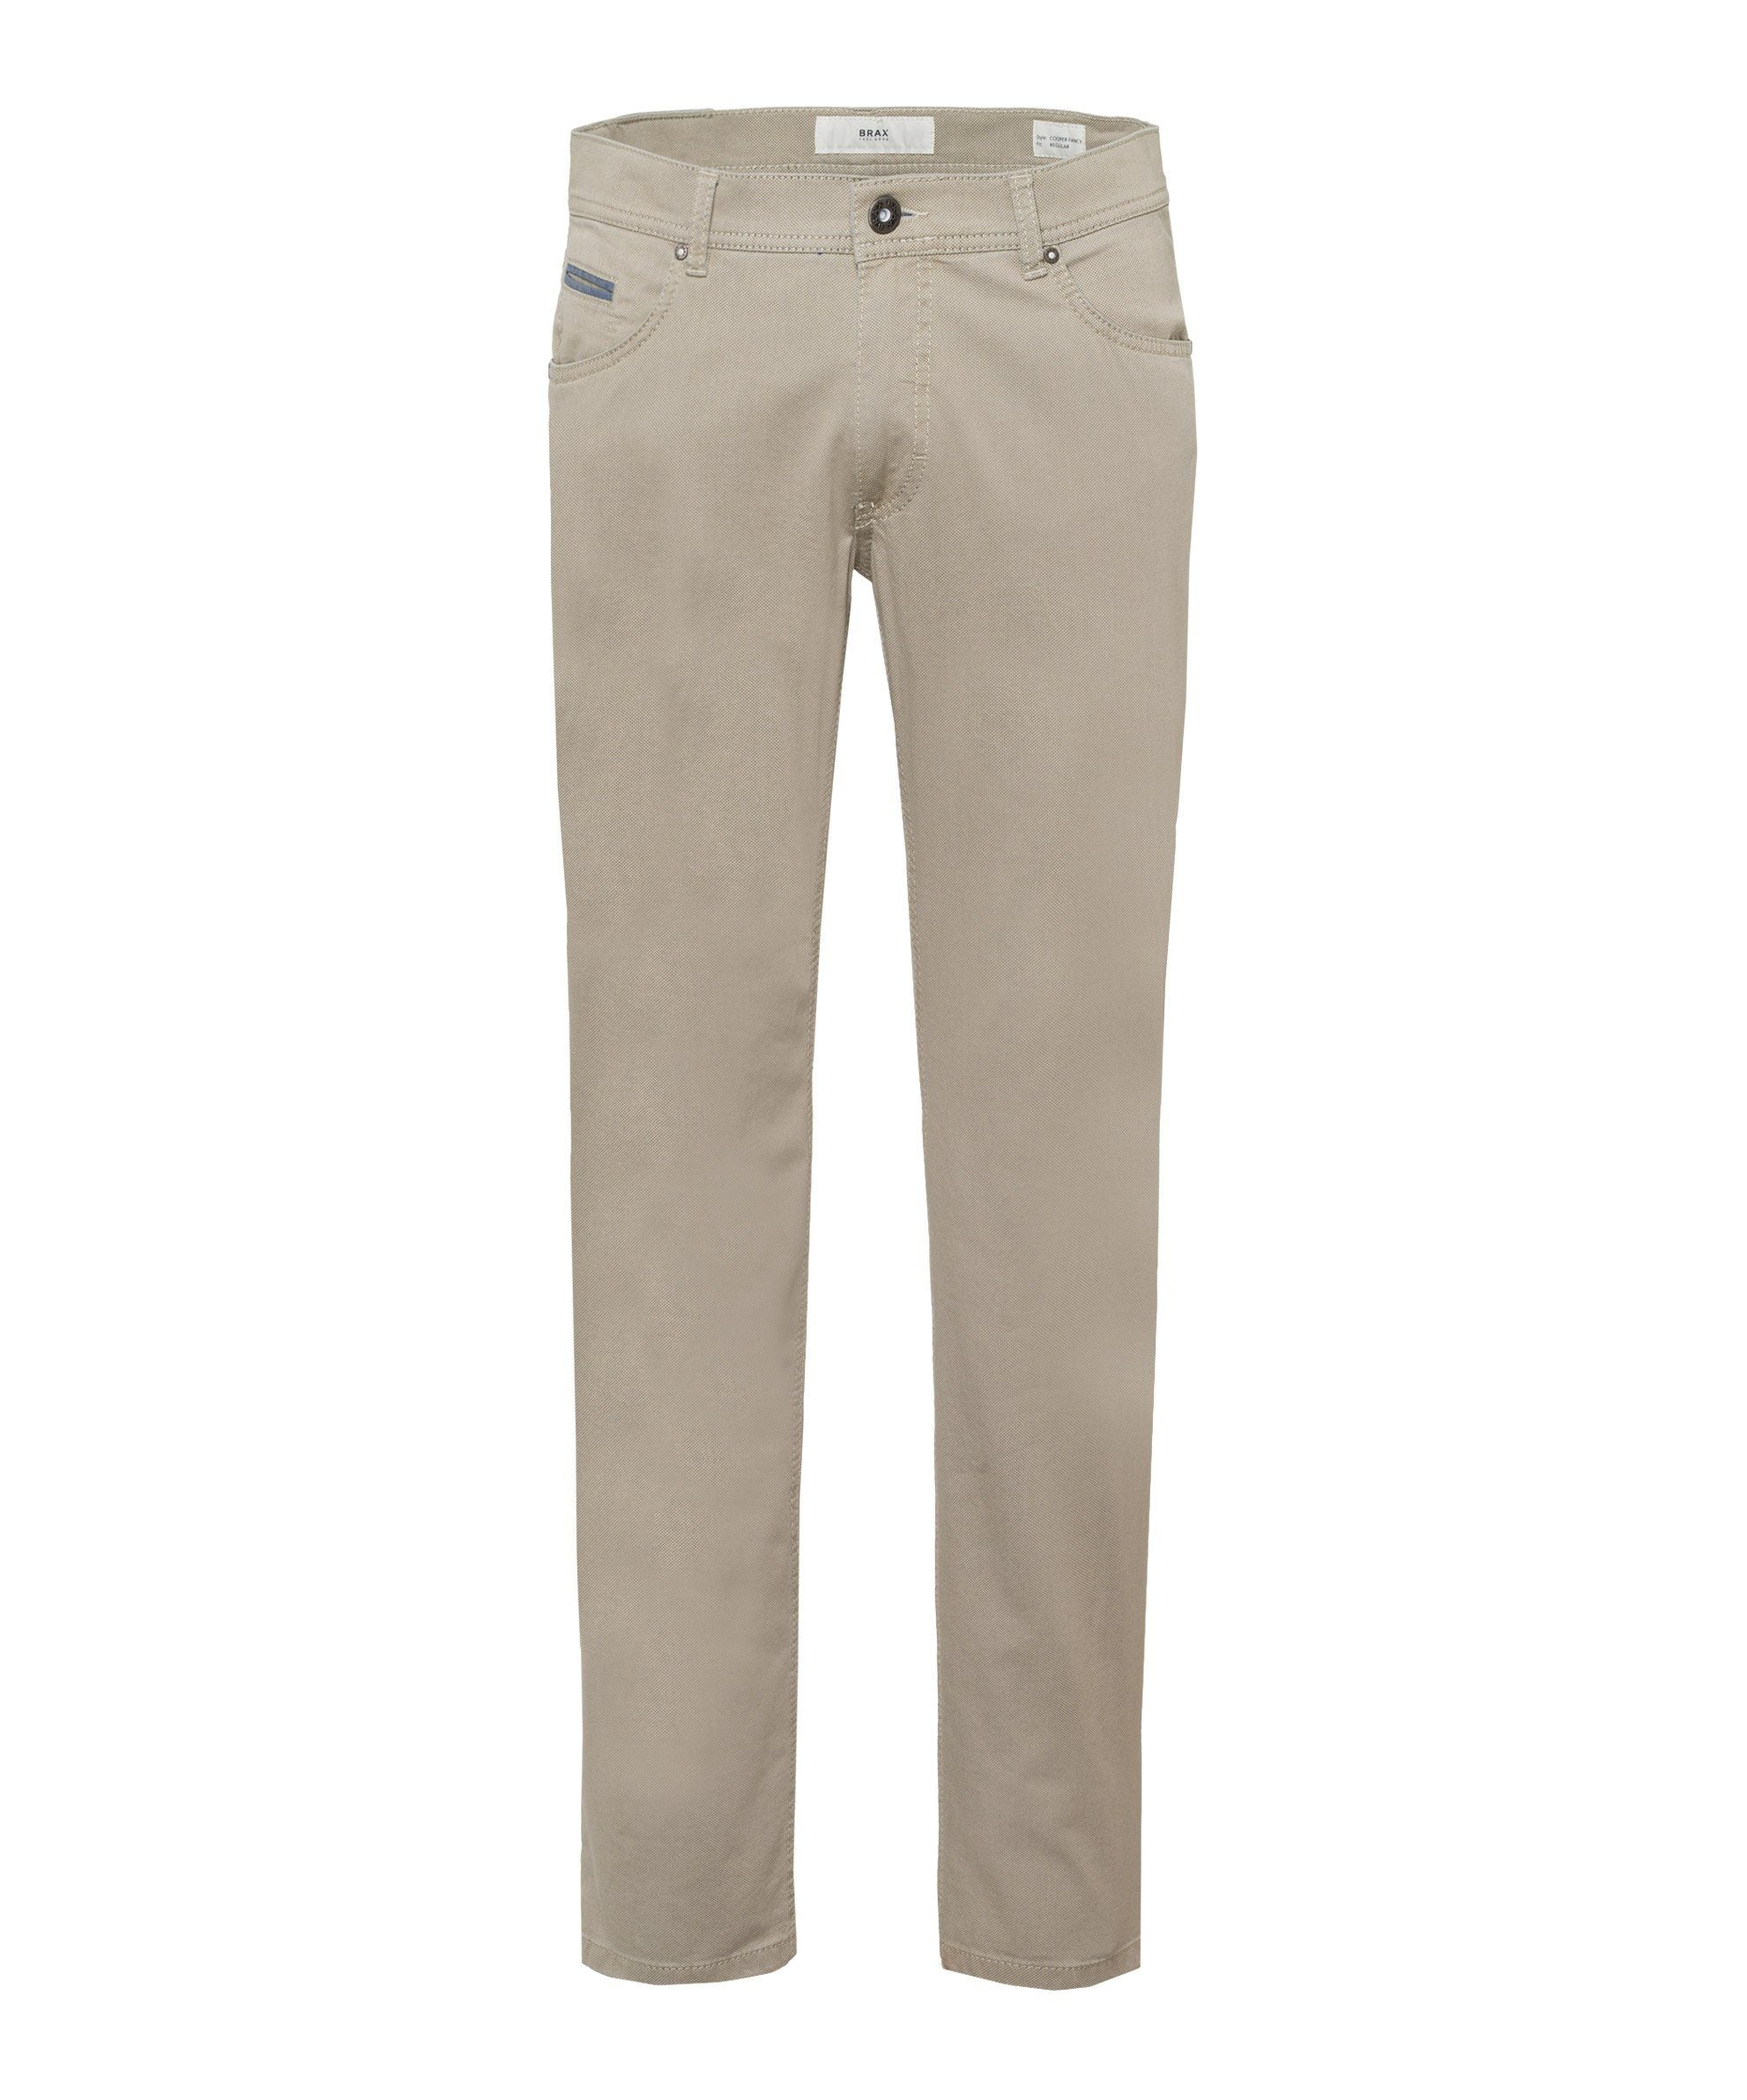 Brax Cooper Tritone 5 Pocket Pants